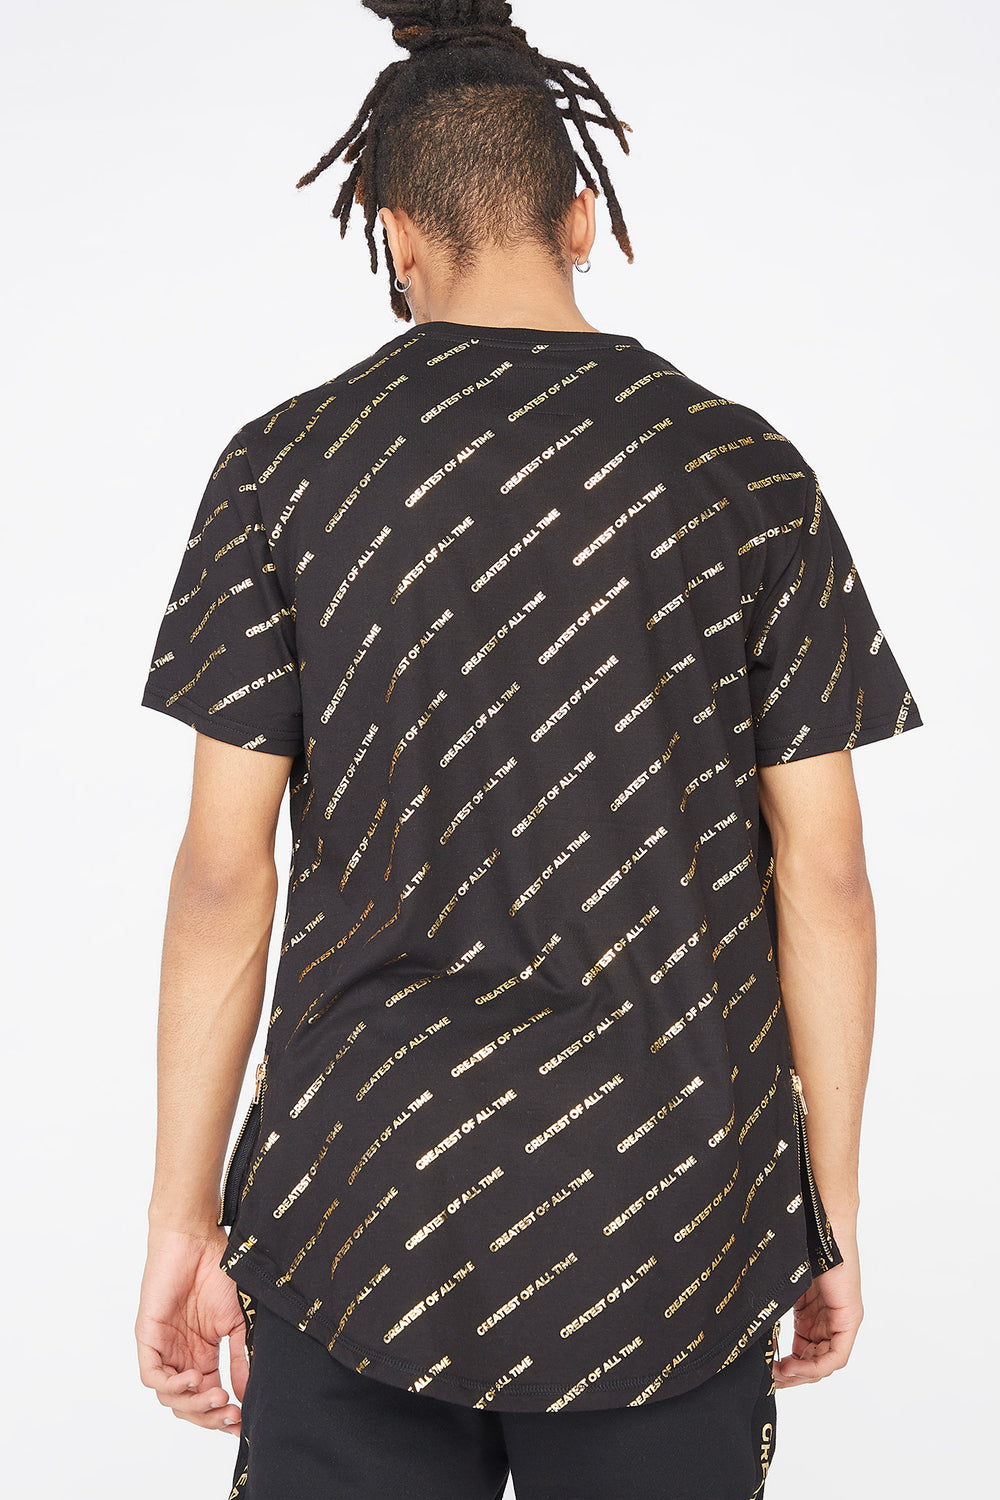 Greatest Of All Time Graphic Longline T-Shirt Black